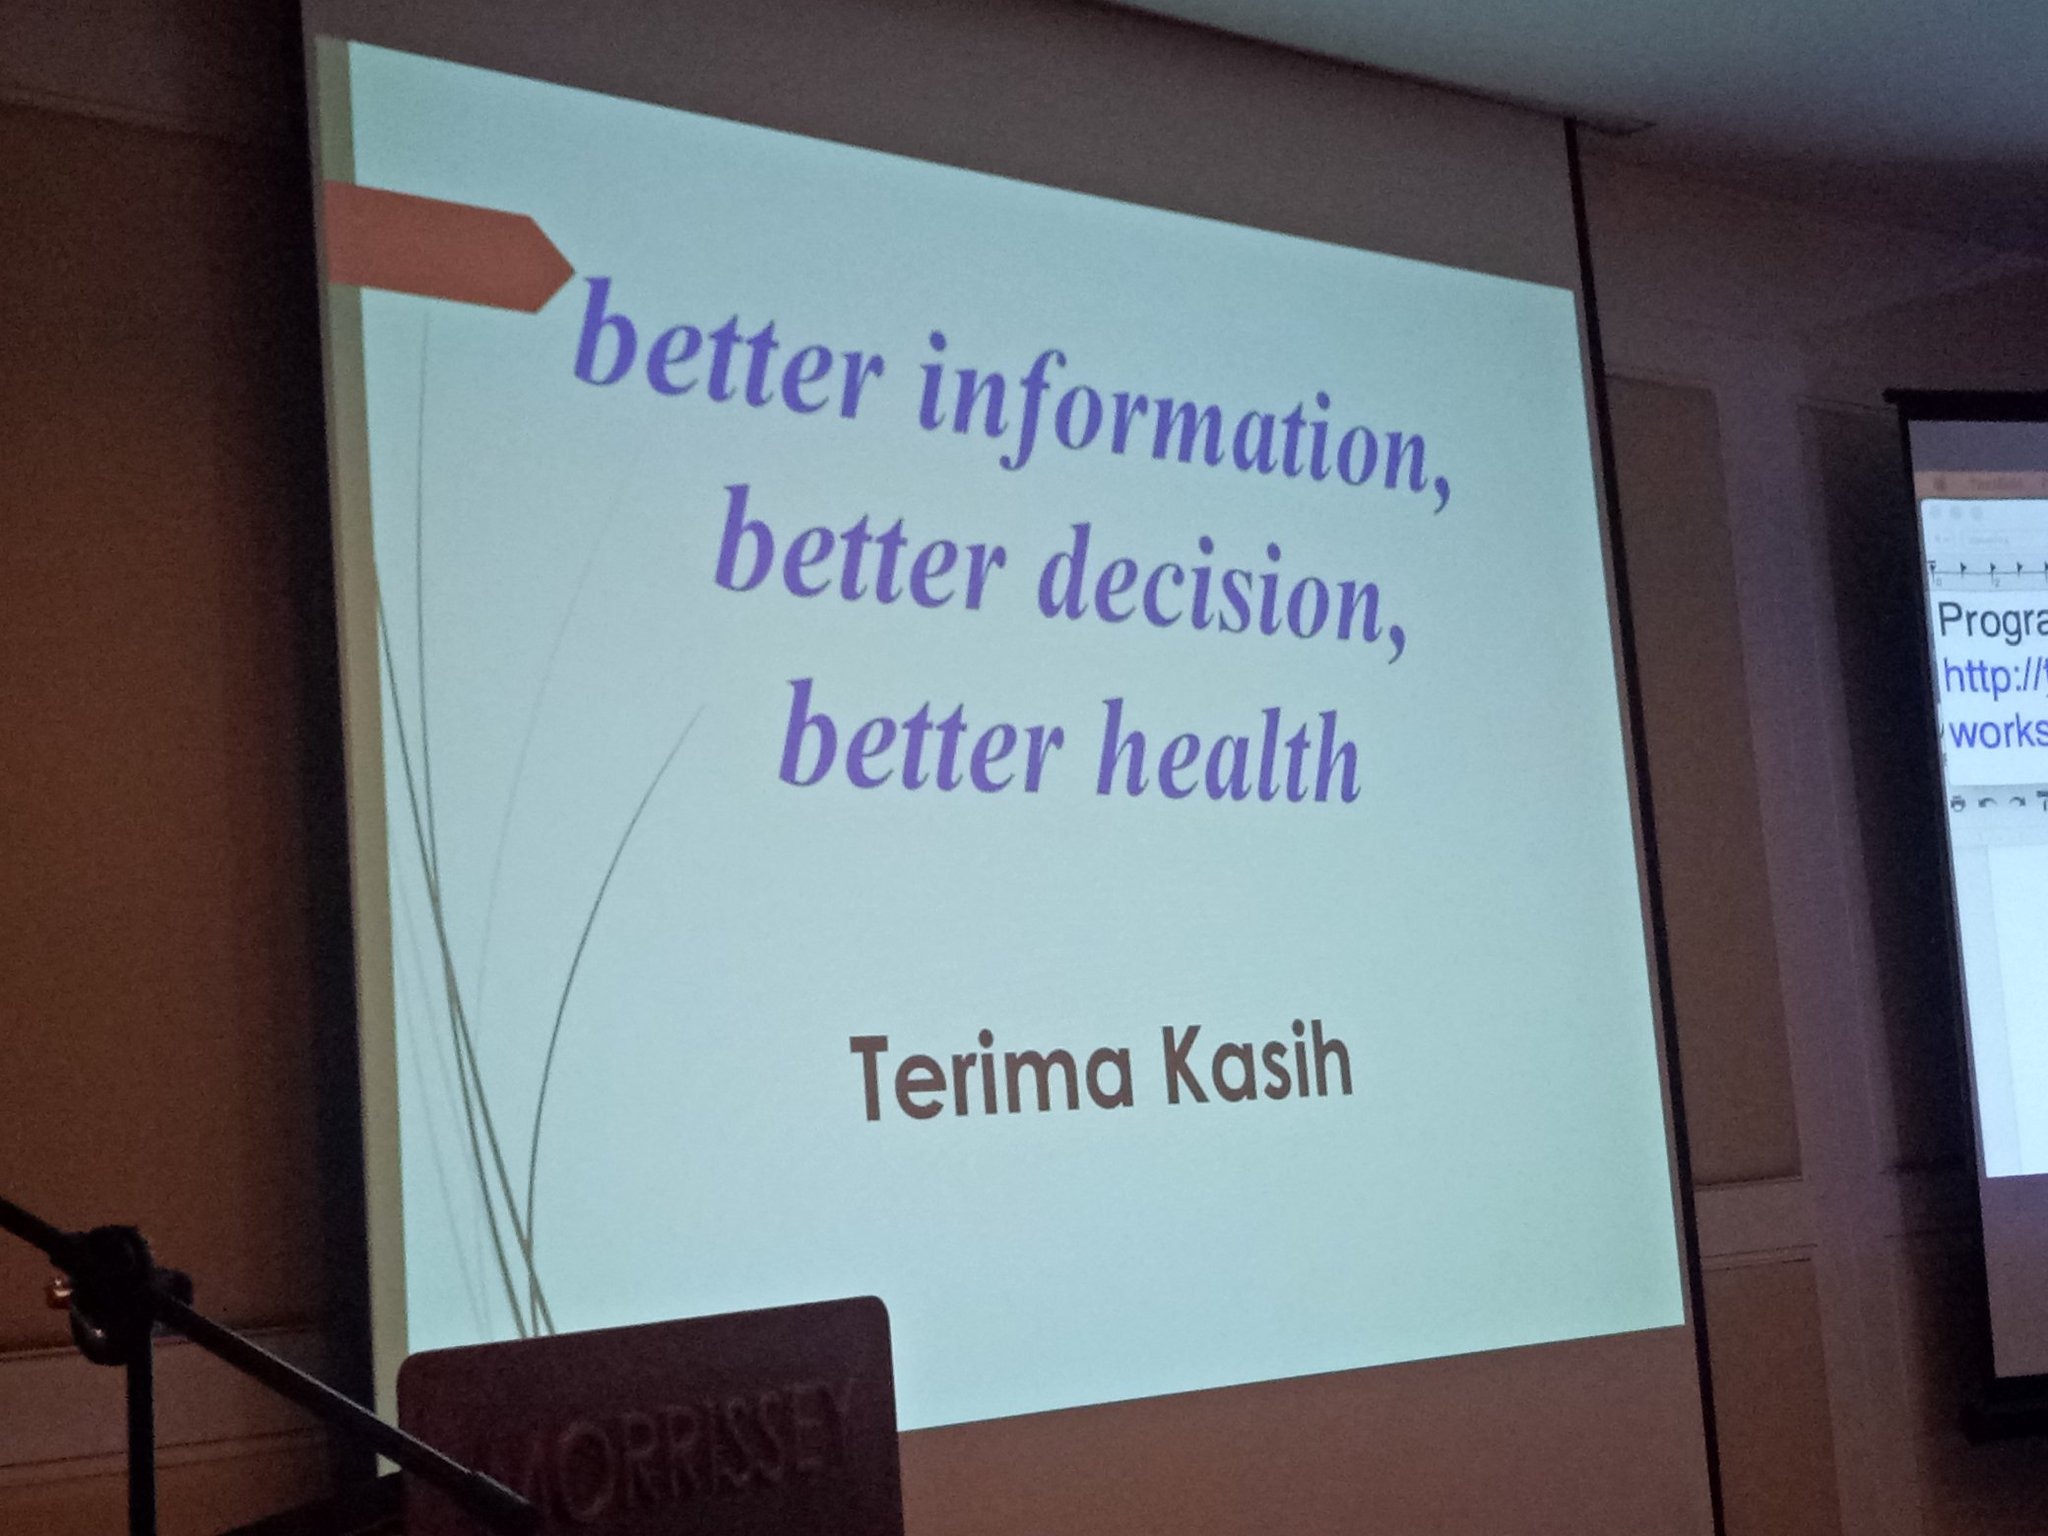 """Better information, better decision, better health"" - Final words from dr. Elizabeth @KemenkesRI #DataCollab https://t.co/cln4gjcJ3f"